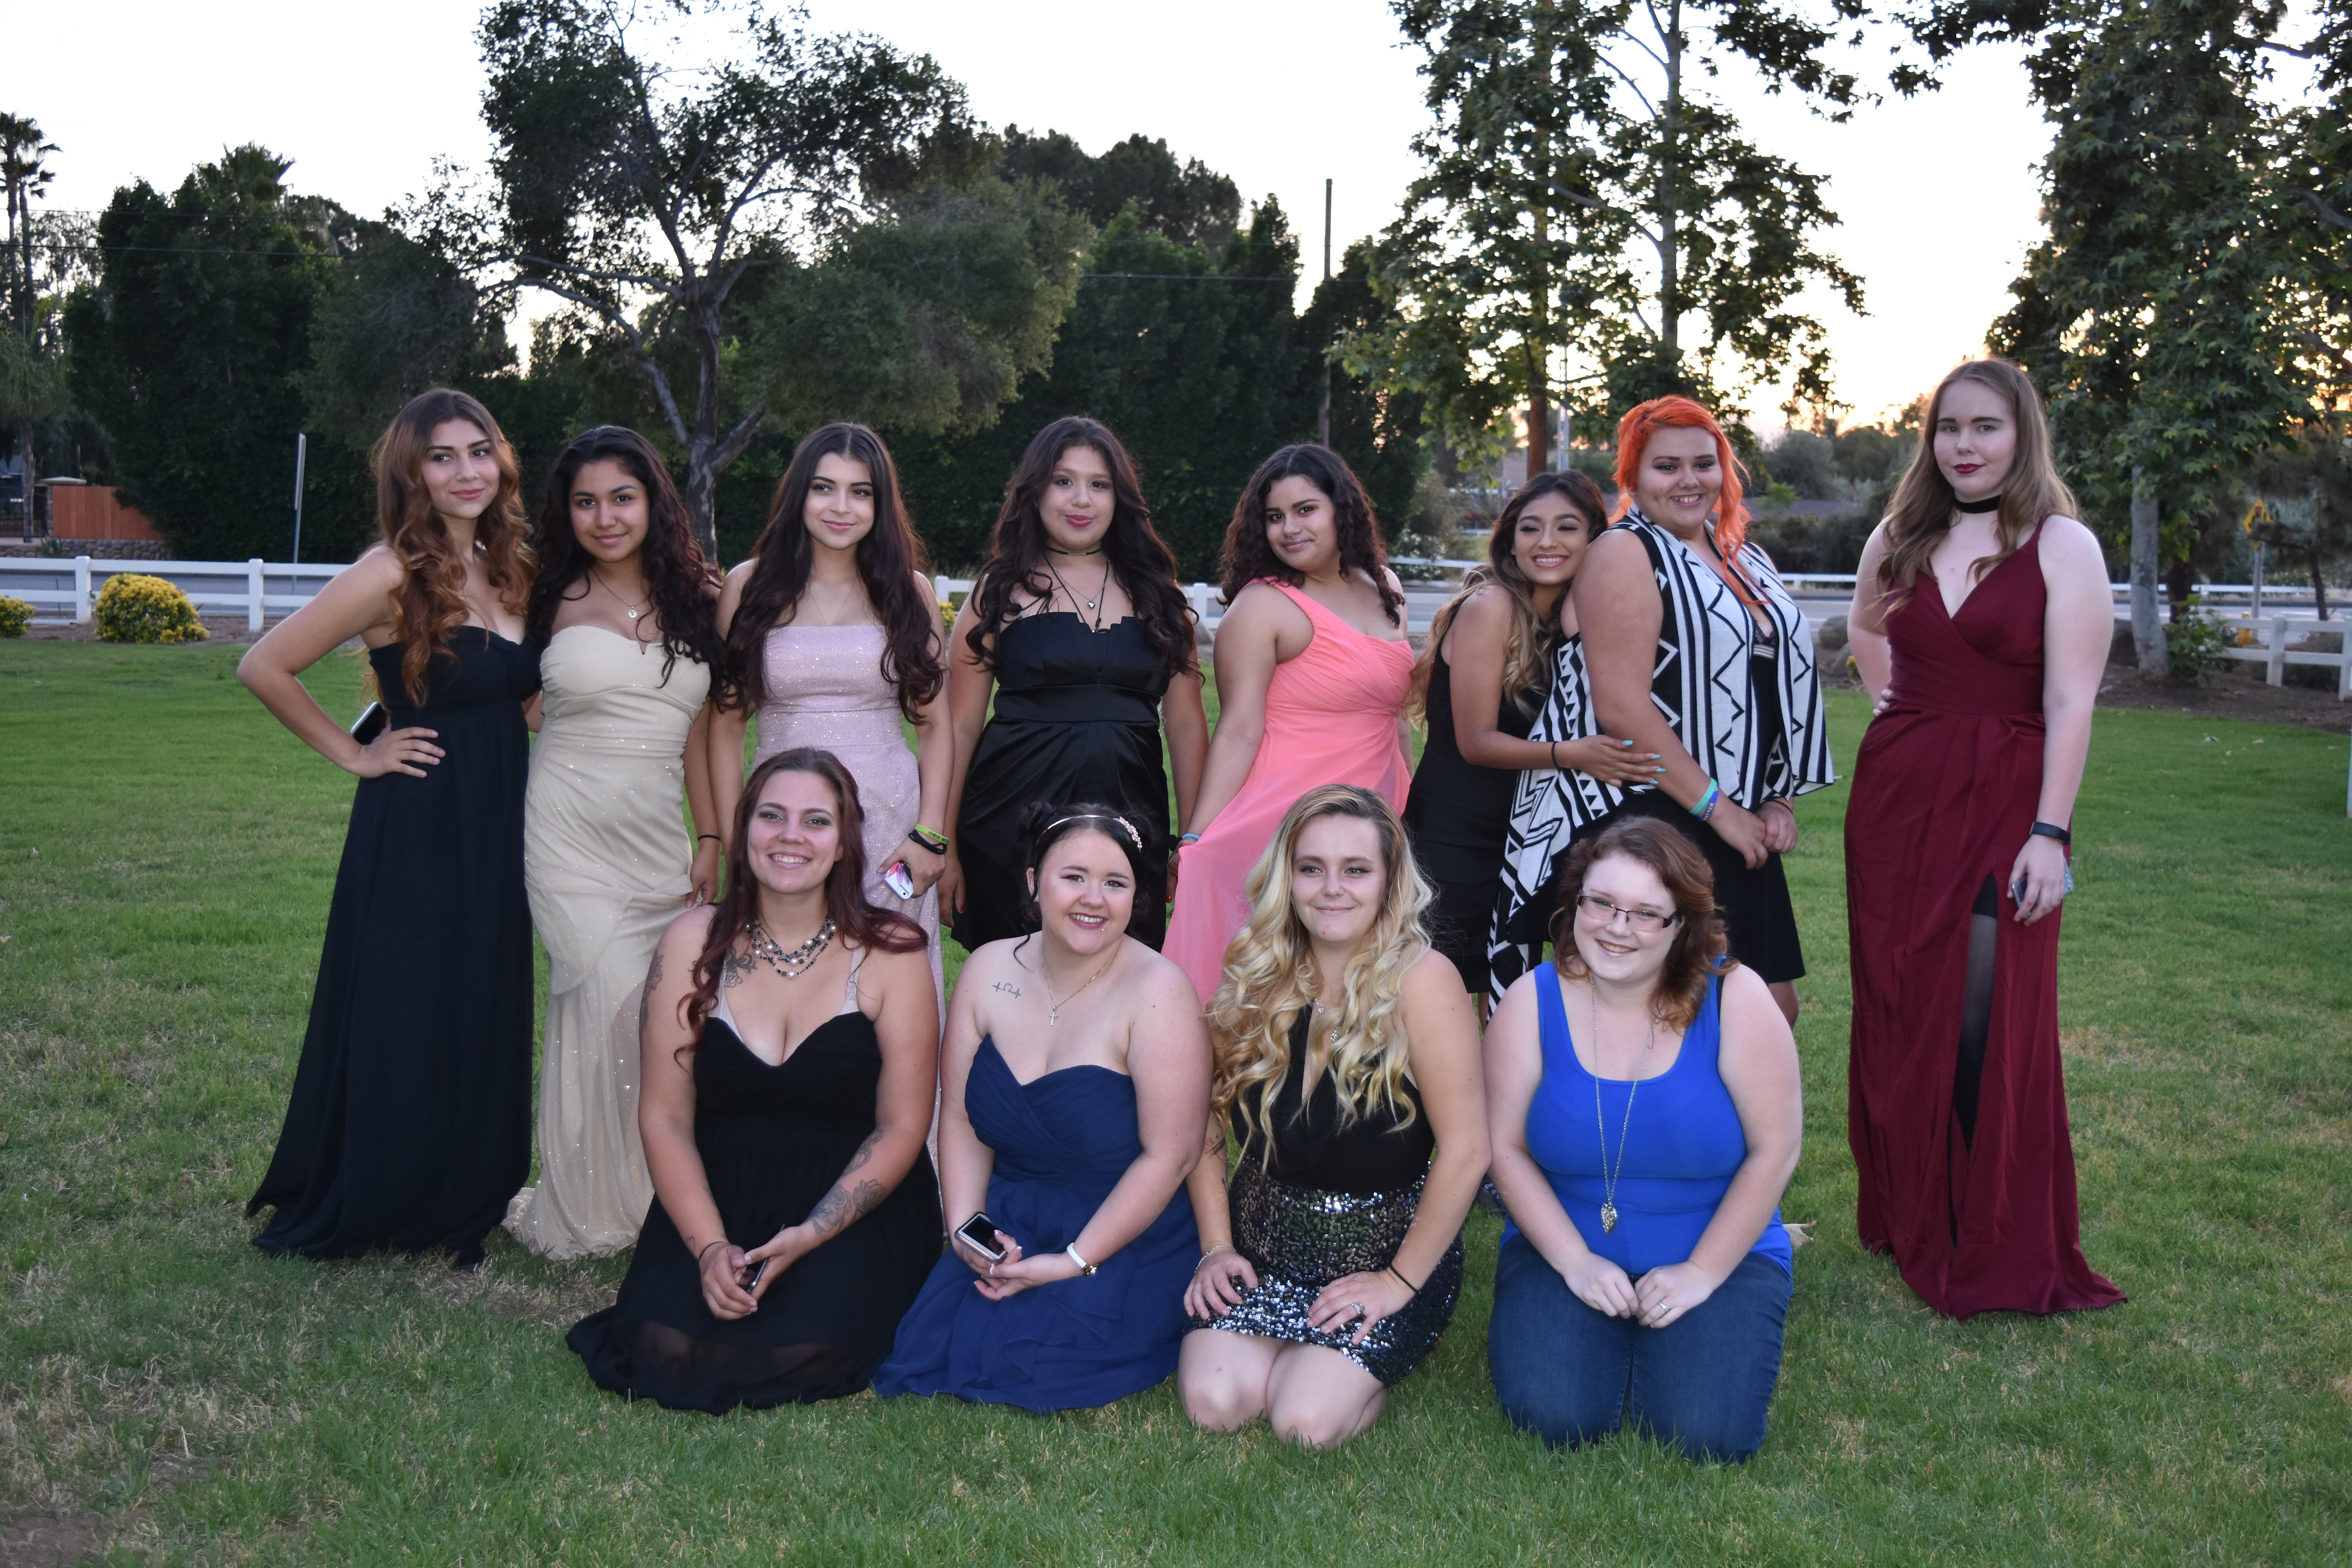 Teen Mom Prom Event | Goodwill Industries of San Diego County